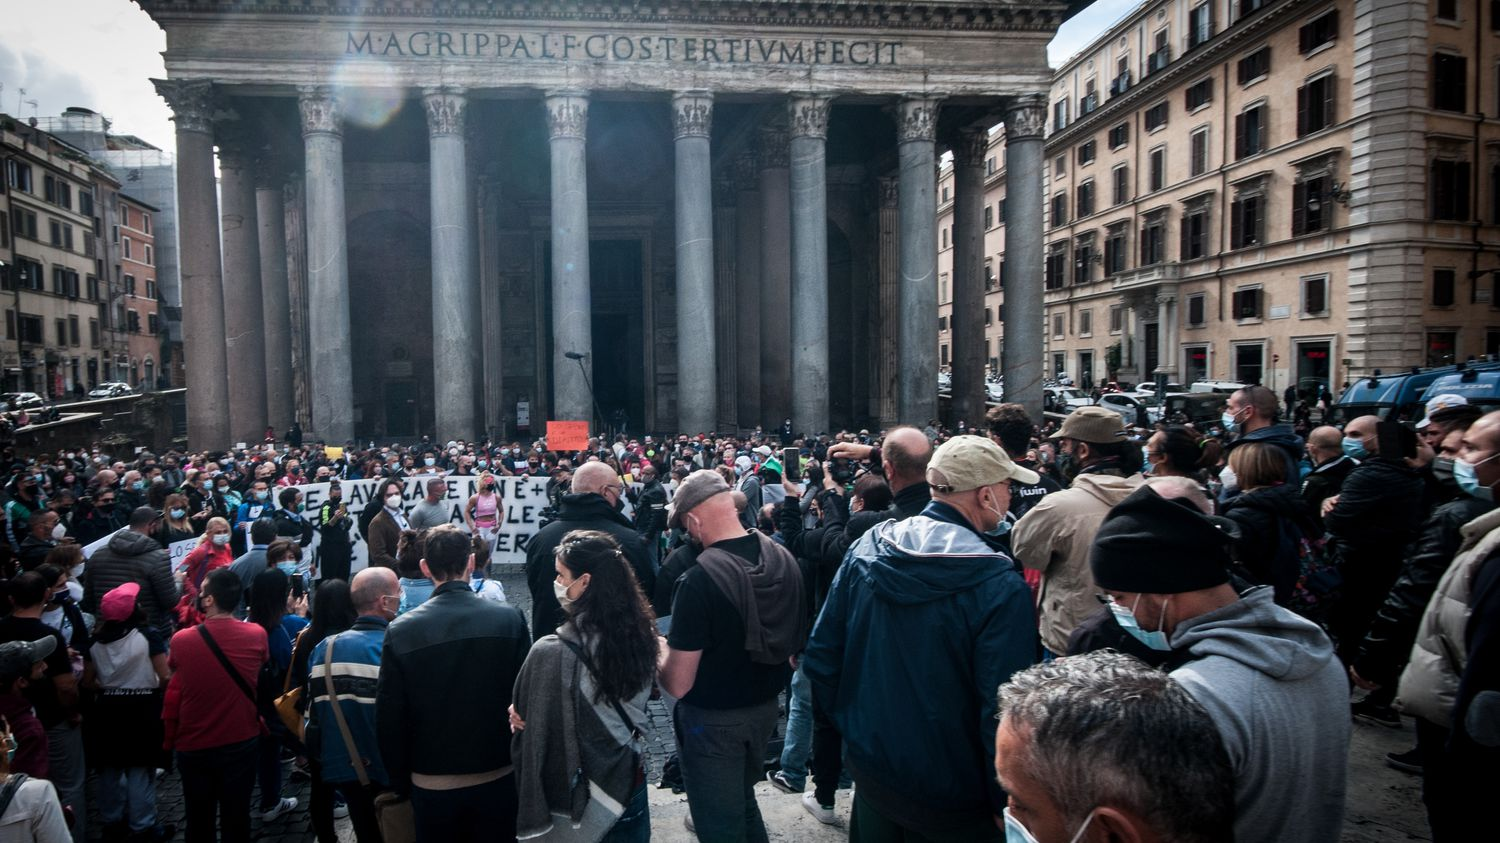 Violence erupts between police and anti-lockdown protestors in Italy